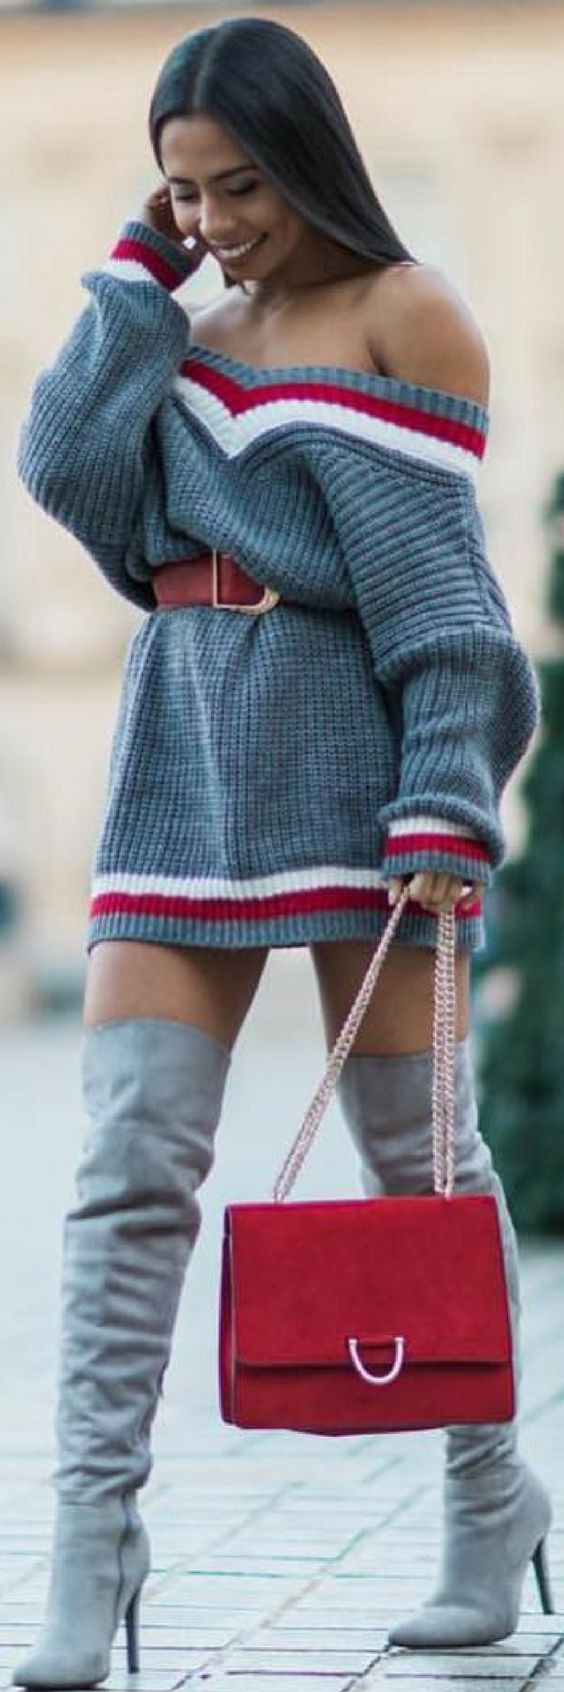 Improve Your Look With 21 Of The Most Comfortable Sweaters https://ecstasymodels.blog/2018/01/10/improve-look-21-comfortable-sweaters/?utm_campaign=coschedule&utm_source=pinterest&utm_medium=Ecstasy%20Models%20-%20Womens%20Fashion%20and%20Streetstyle&utm_content=Improve%20Your%20Look%20With%2021%20Of%20The%20Most%20Comfortable%20Sweaters